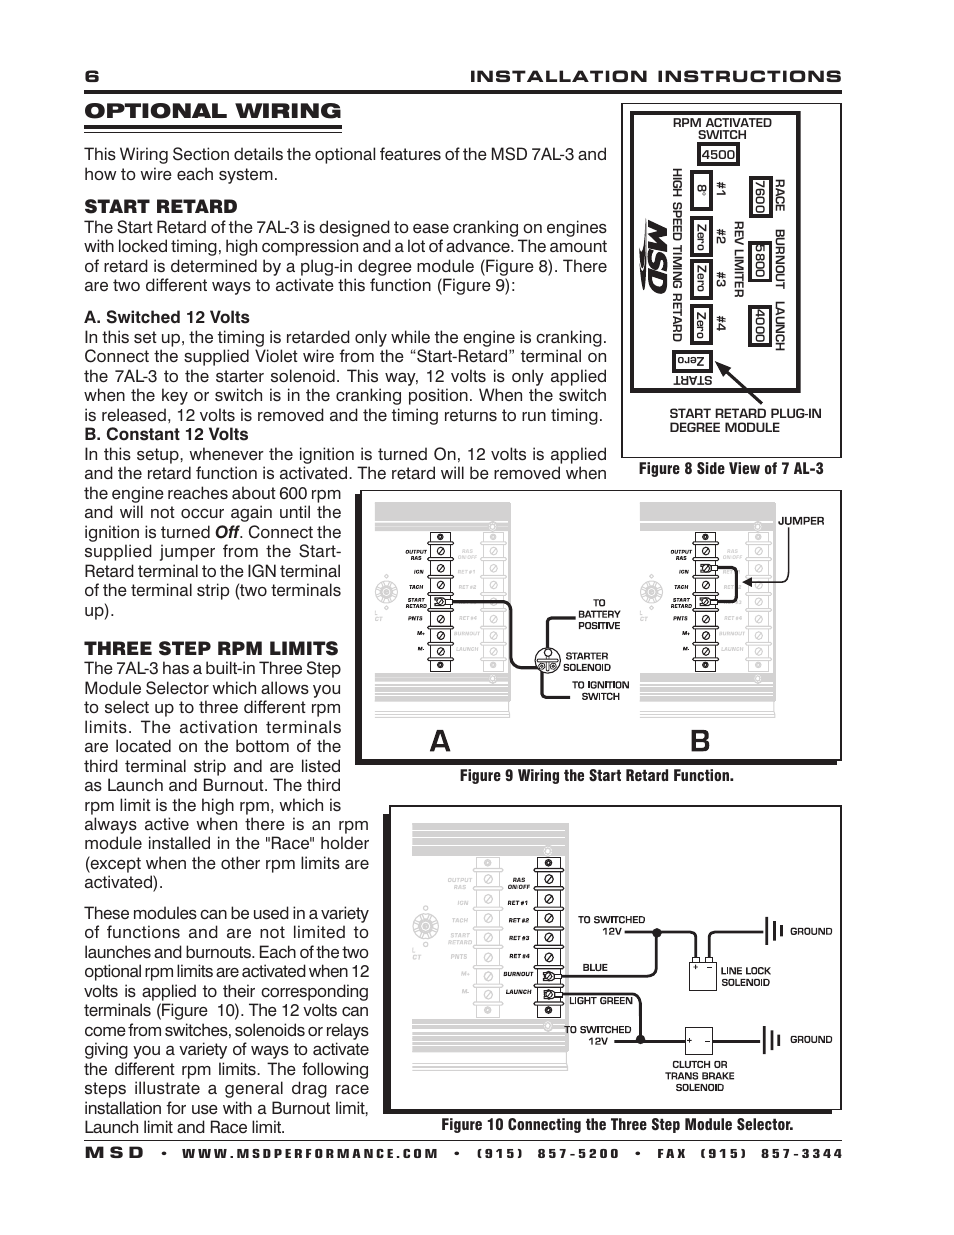 diagram] retard msd 7al wiring diagram full version hd quality wiring  diagram - partdiagrams.argiso.it  argiso.it currently does not have any sponsors for you.